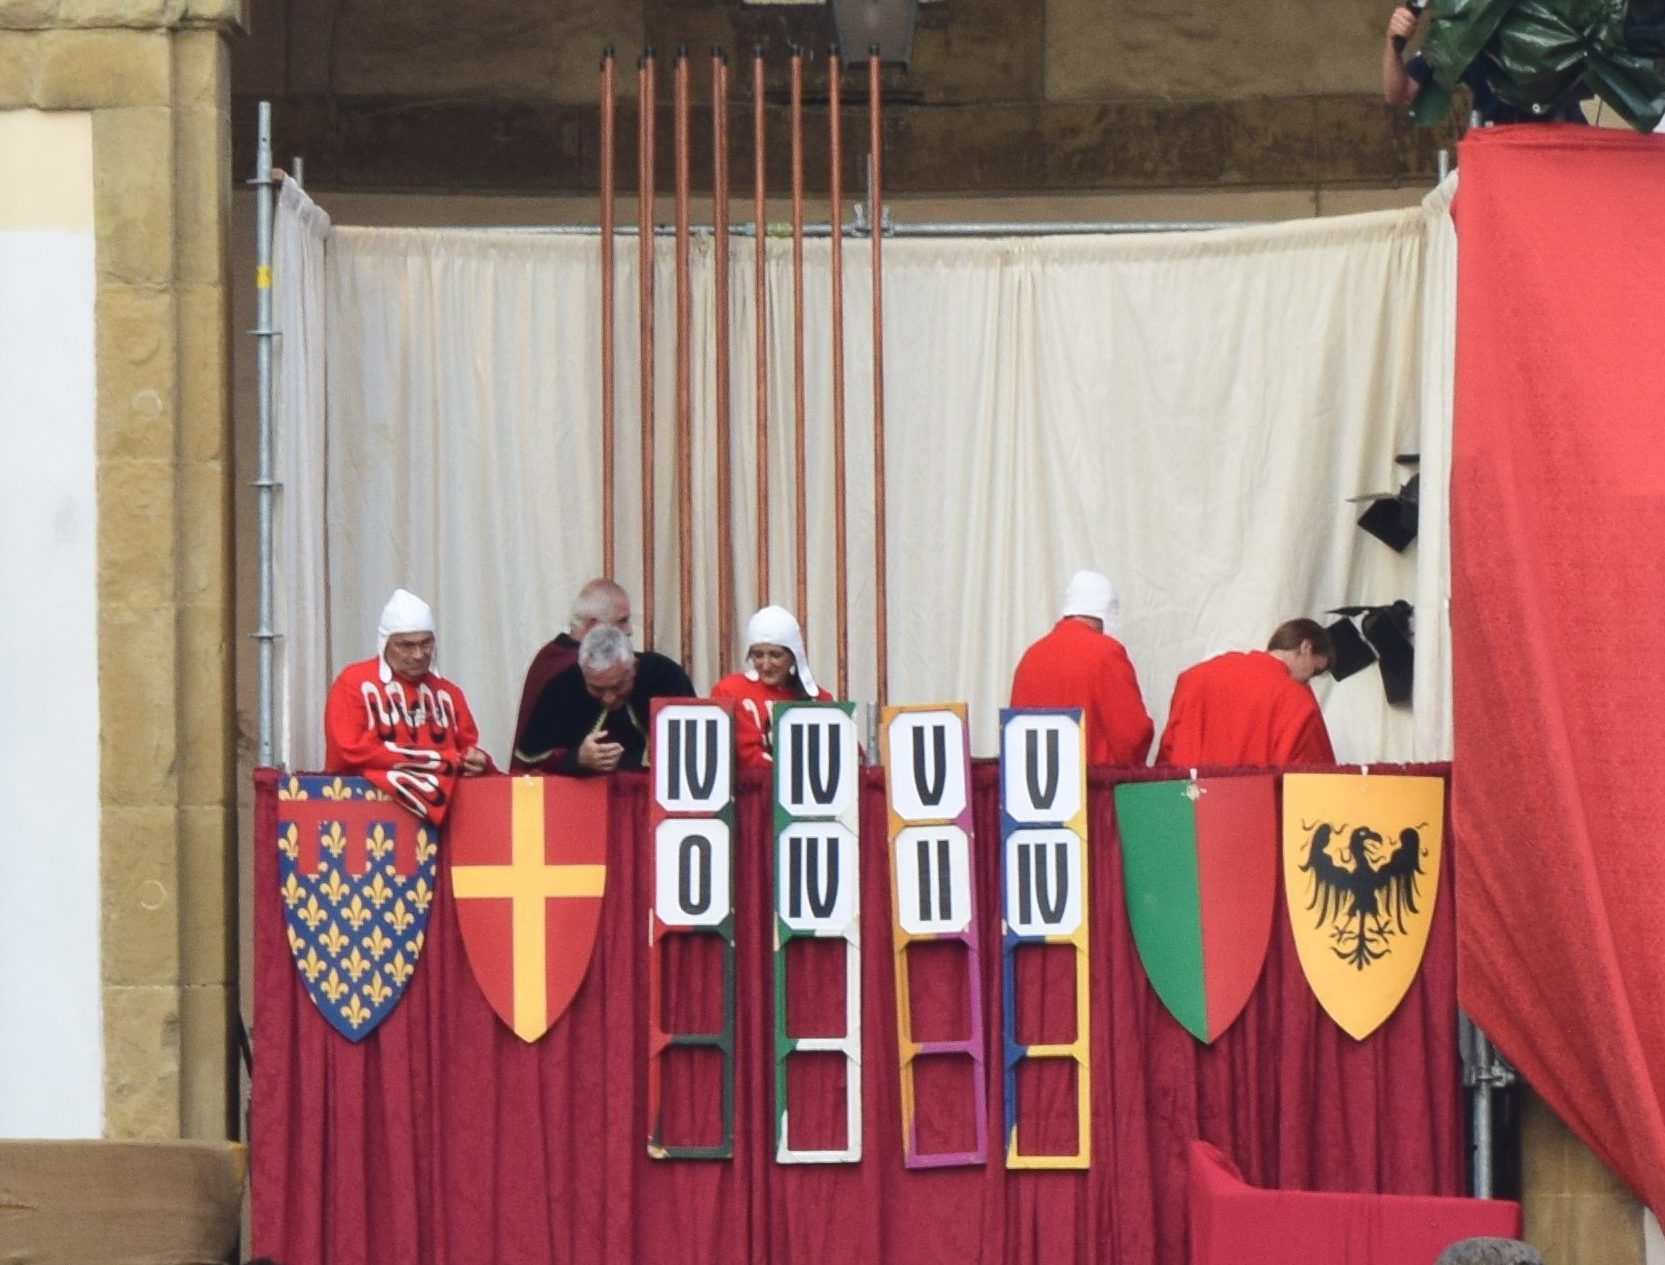 Giostra del Saracino or Joust of the Saracen in Arezzo, Italy, September 1, 2019. Medieval event, https://ouritalianjourney.com/attending-the-joust-of-the-saracen-in-arezzo